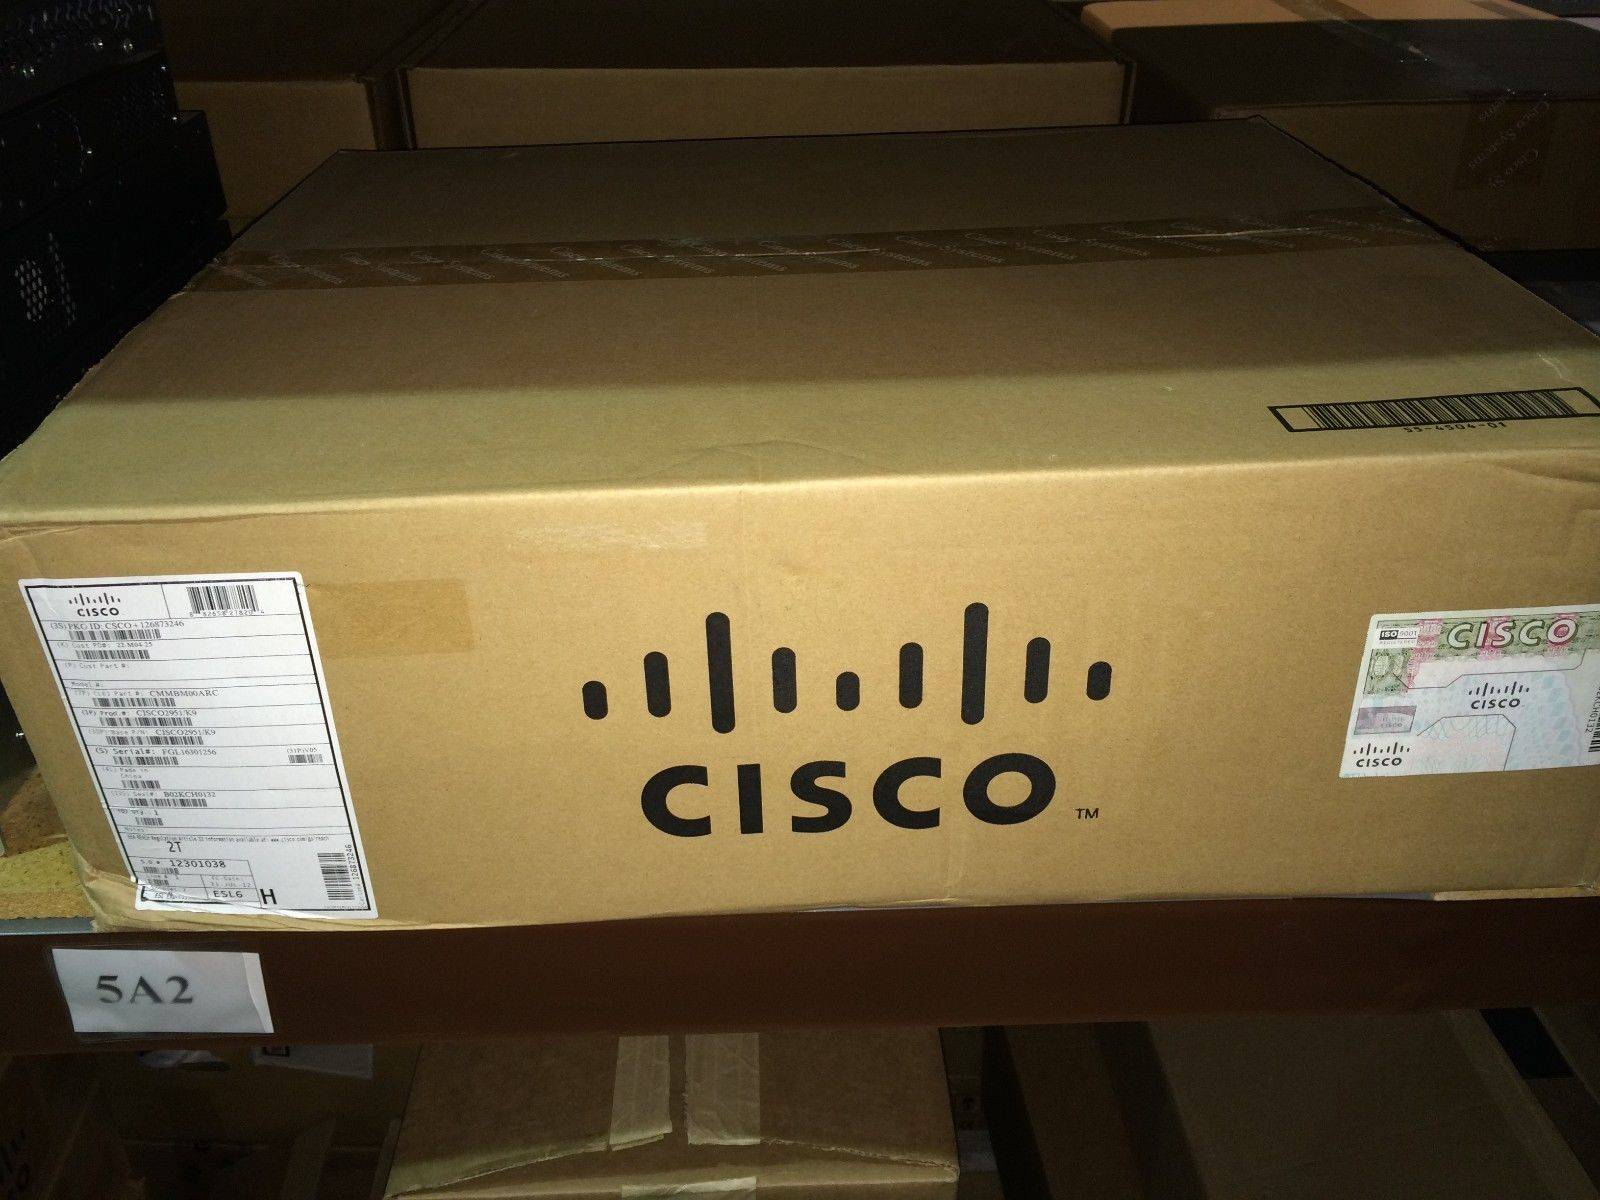 CISCO2951-SEC/K9 cisco router